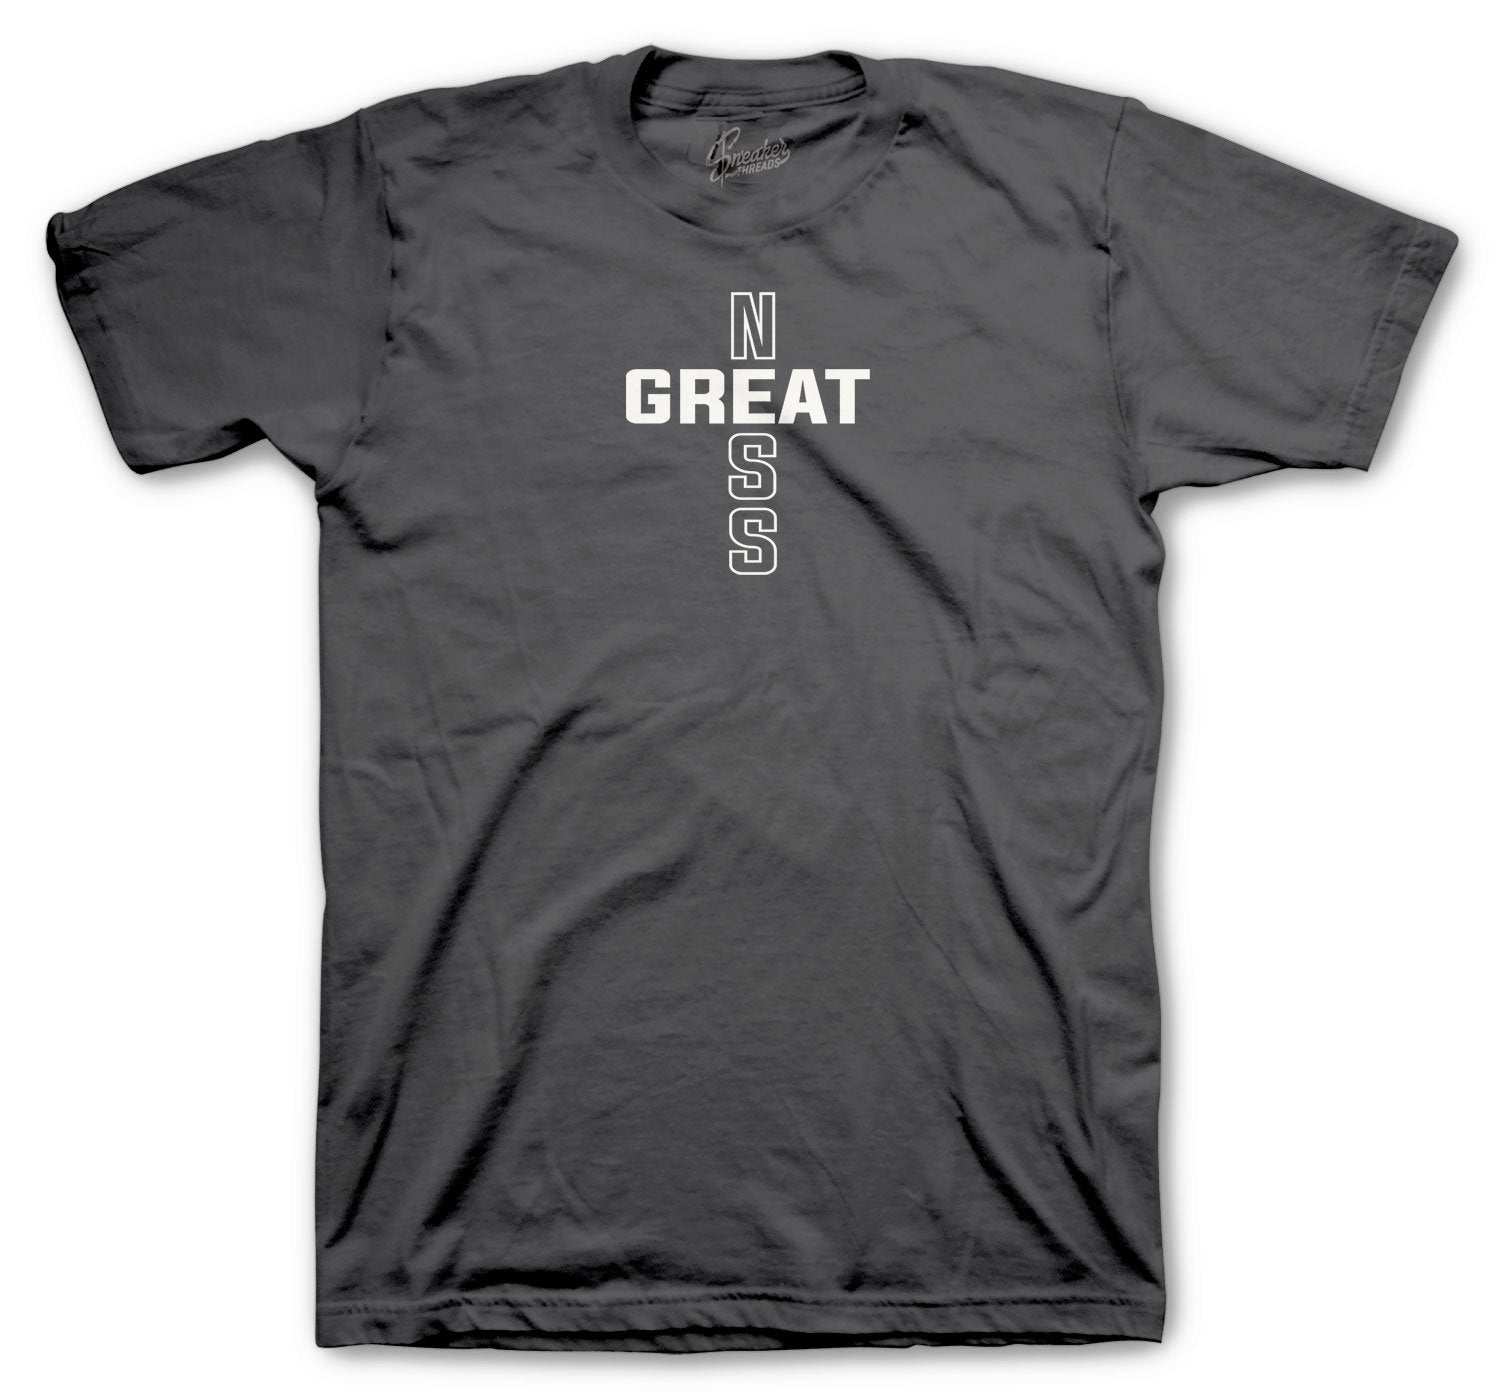 Jordan 12 Dark Grey Greatness Cross shirt